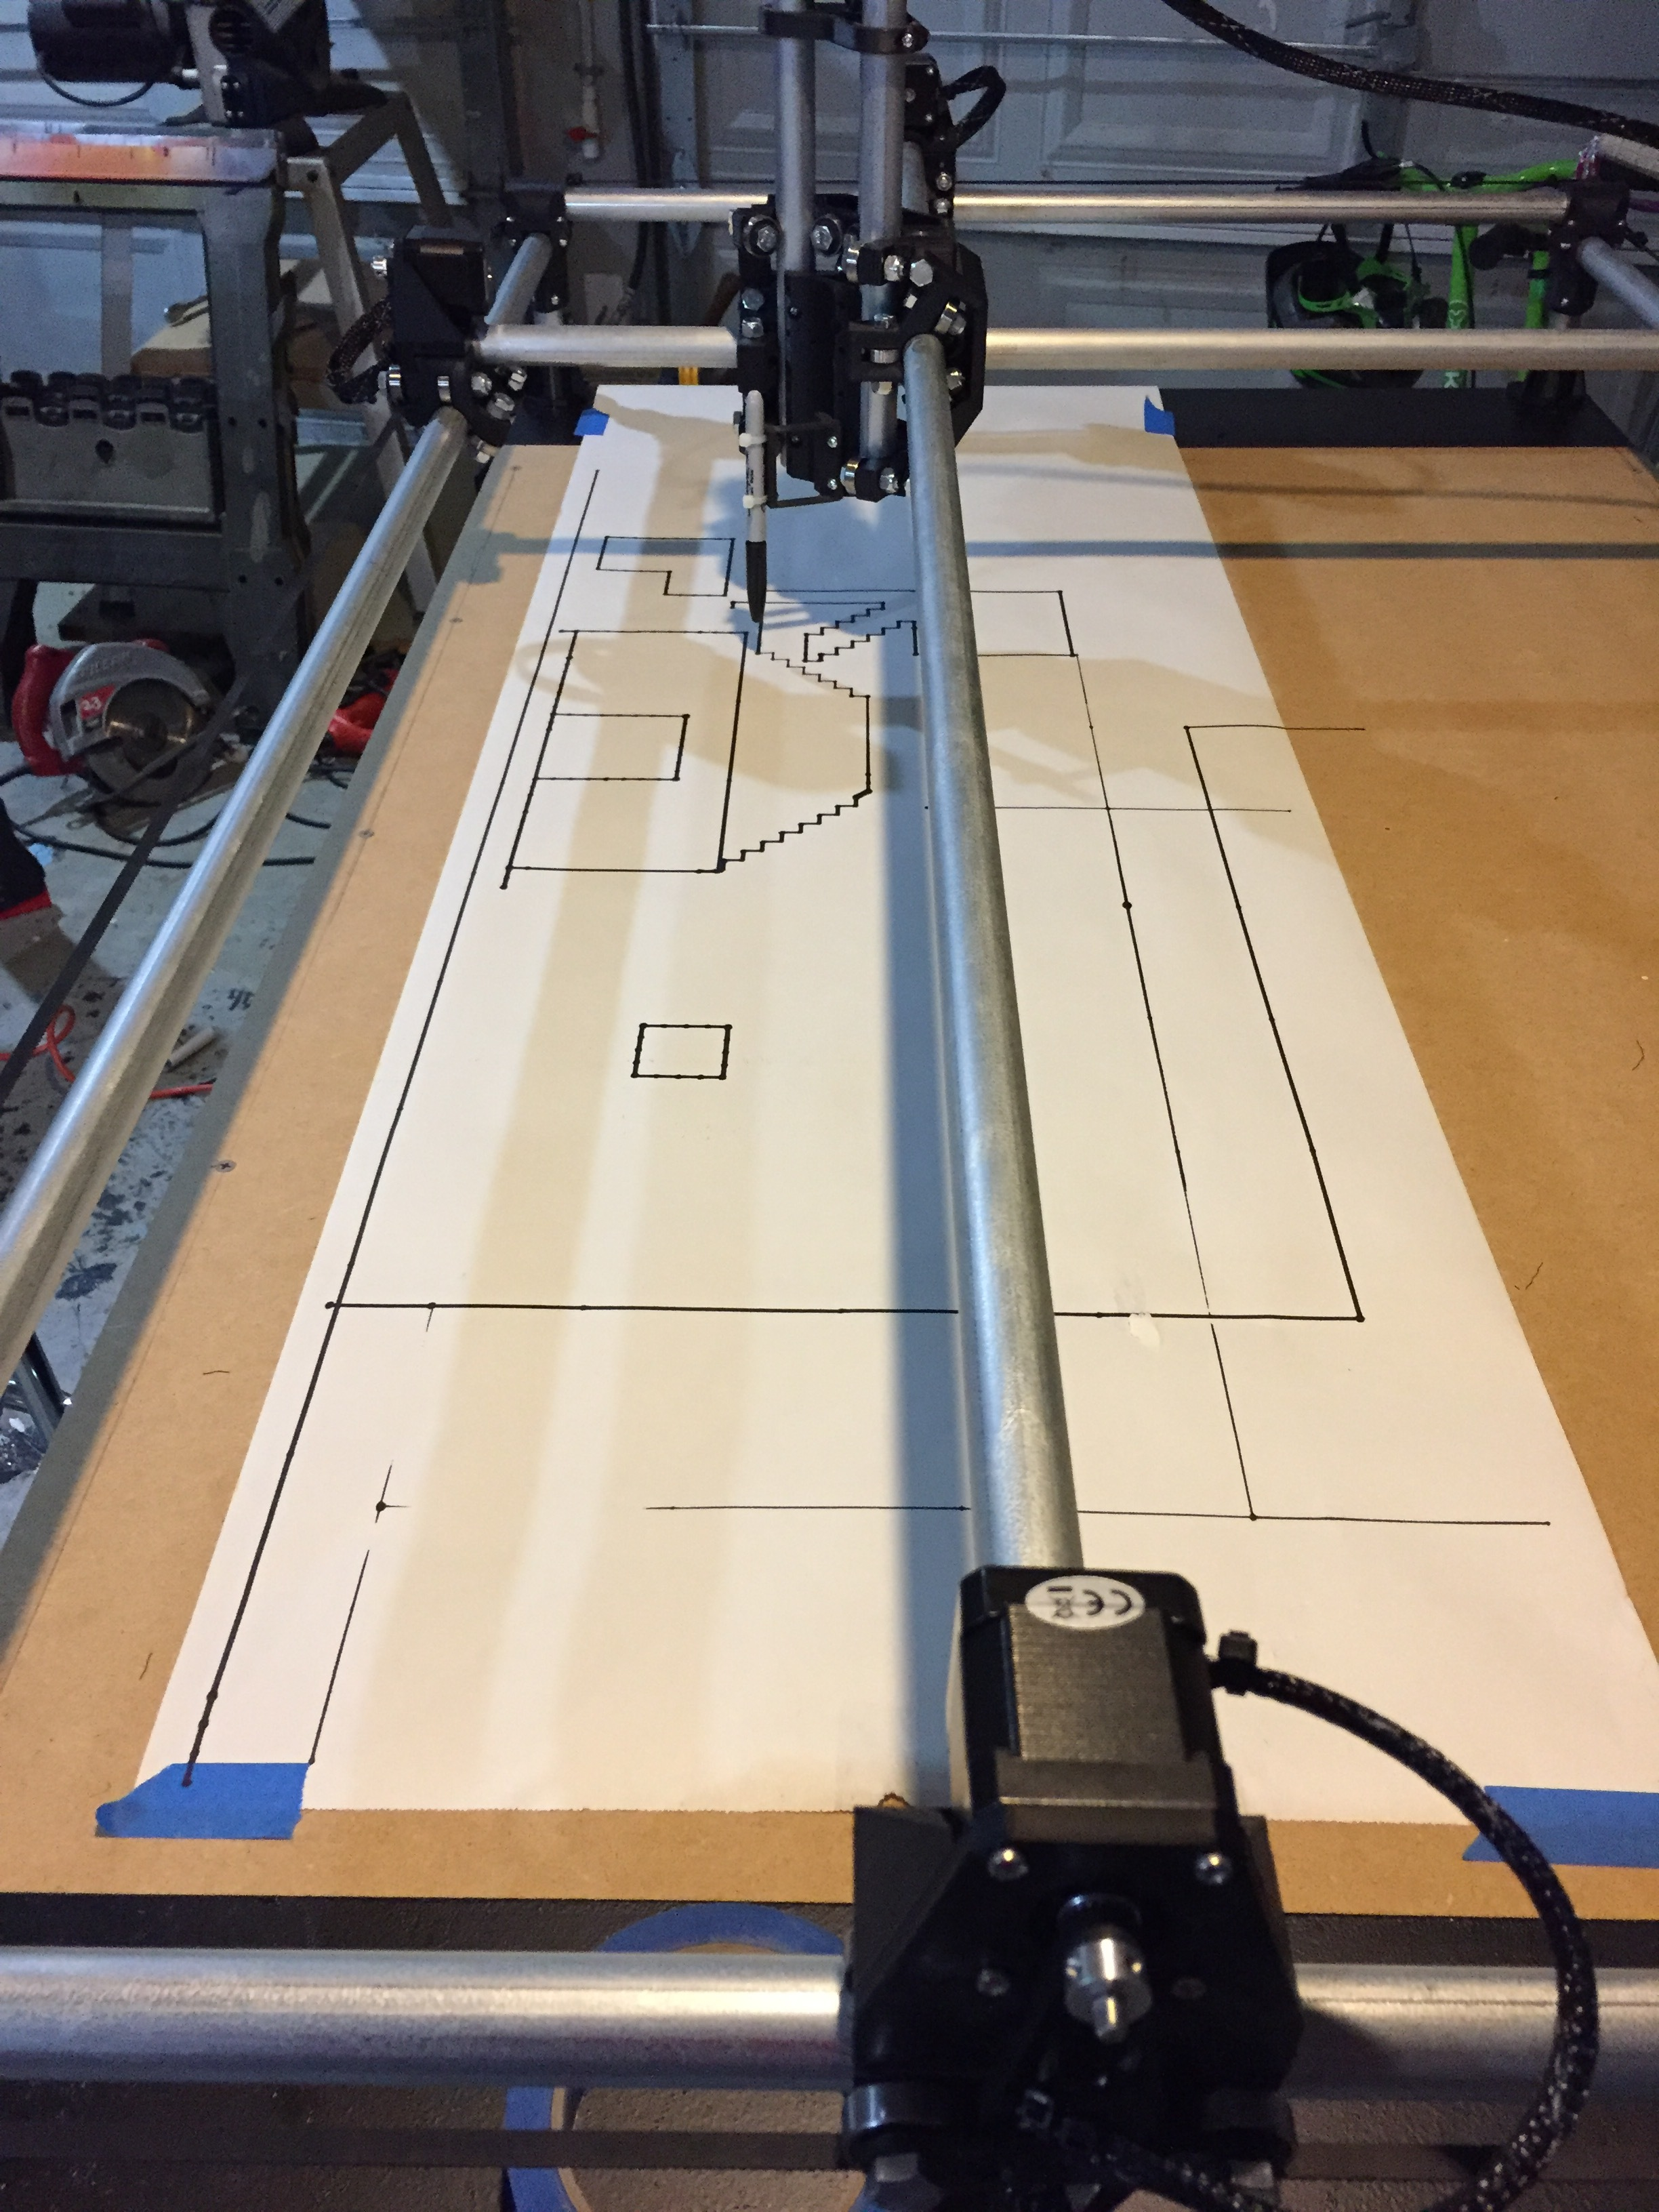 Testing the MPCNC with a pen attachment and a Sharpie.